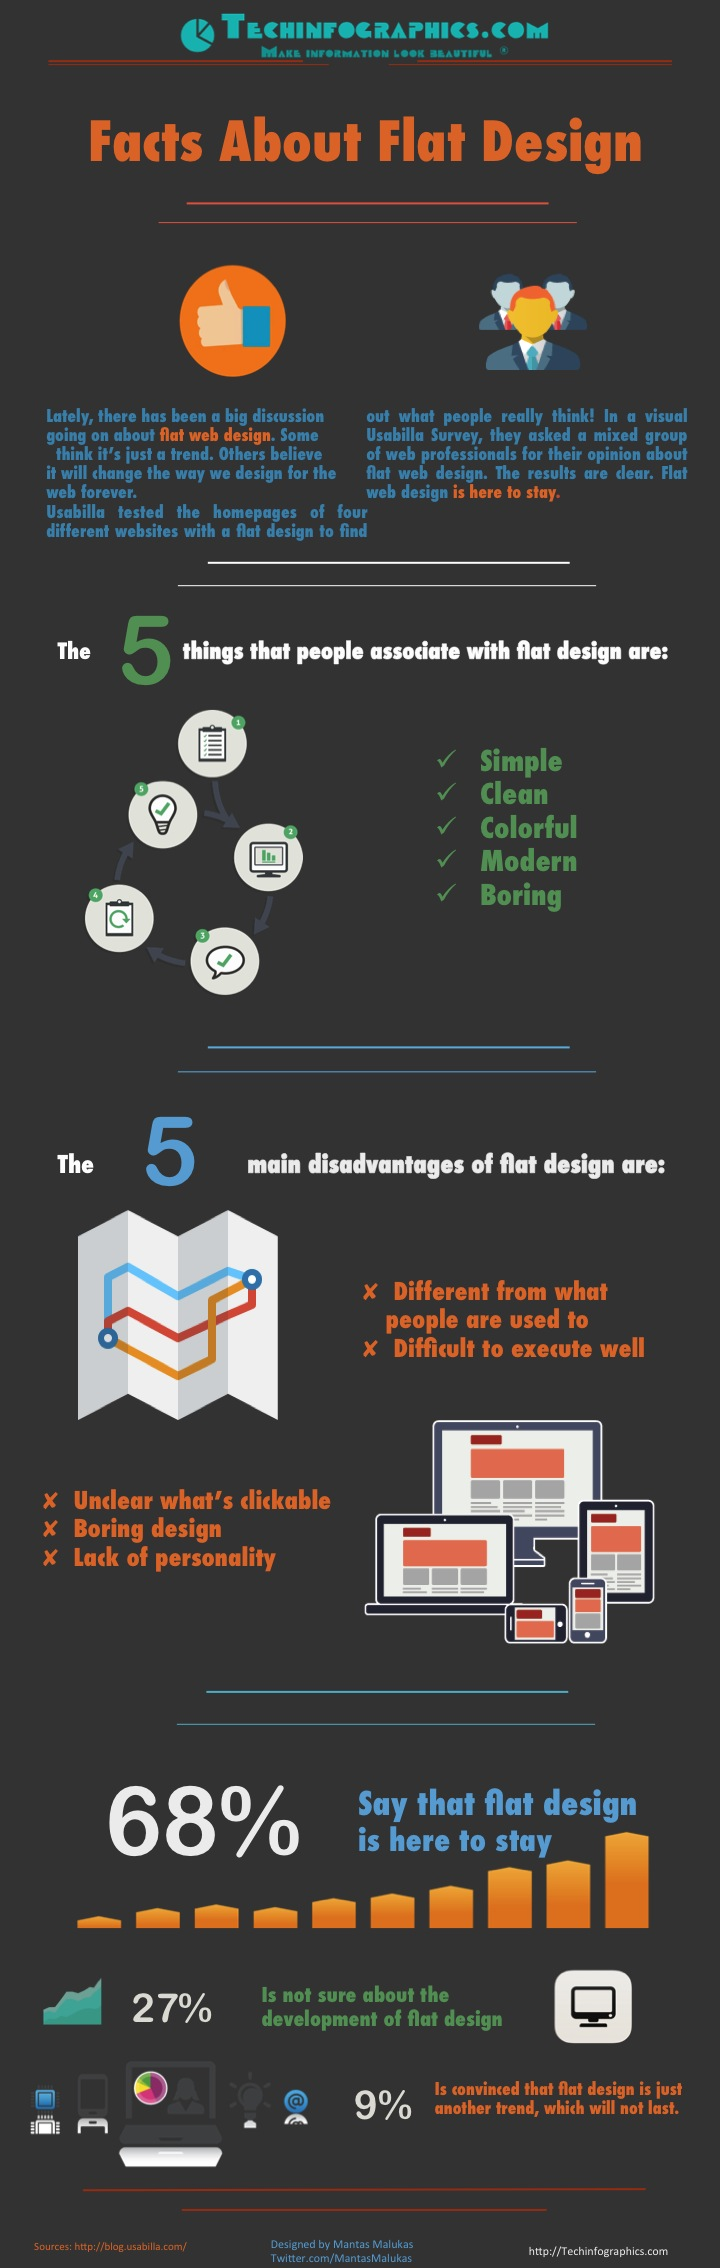 Flat Infographic – Facts About Flat Design - Infographic